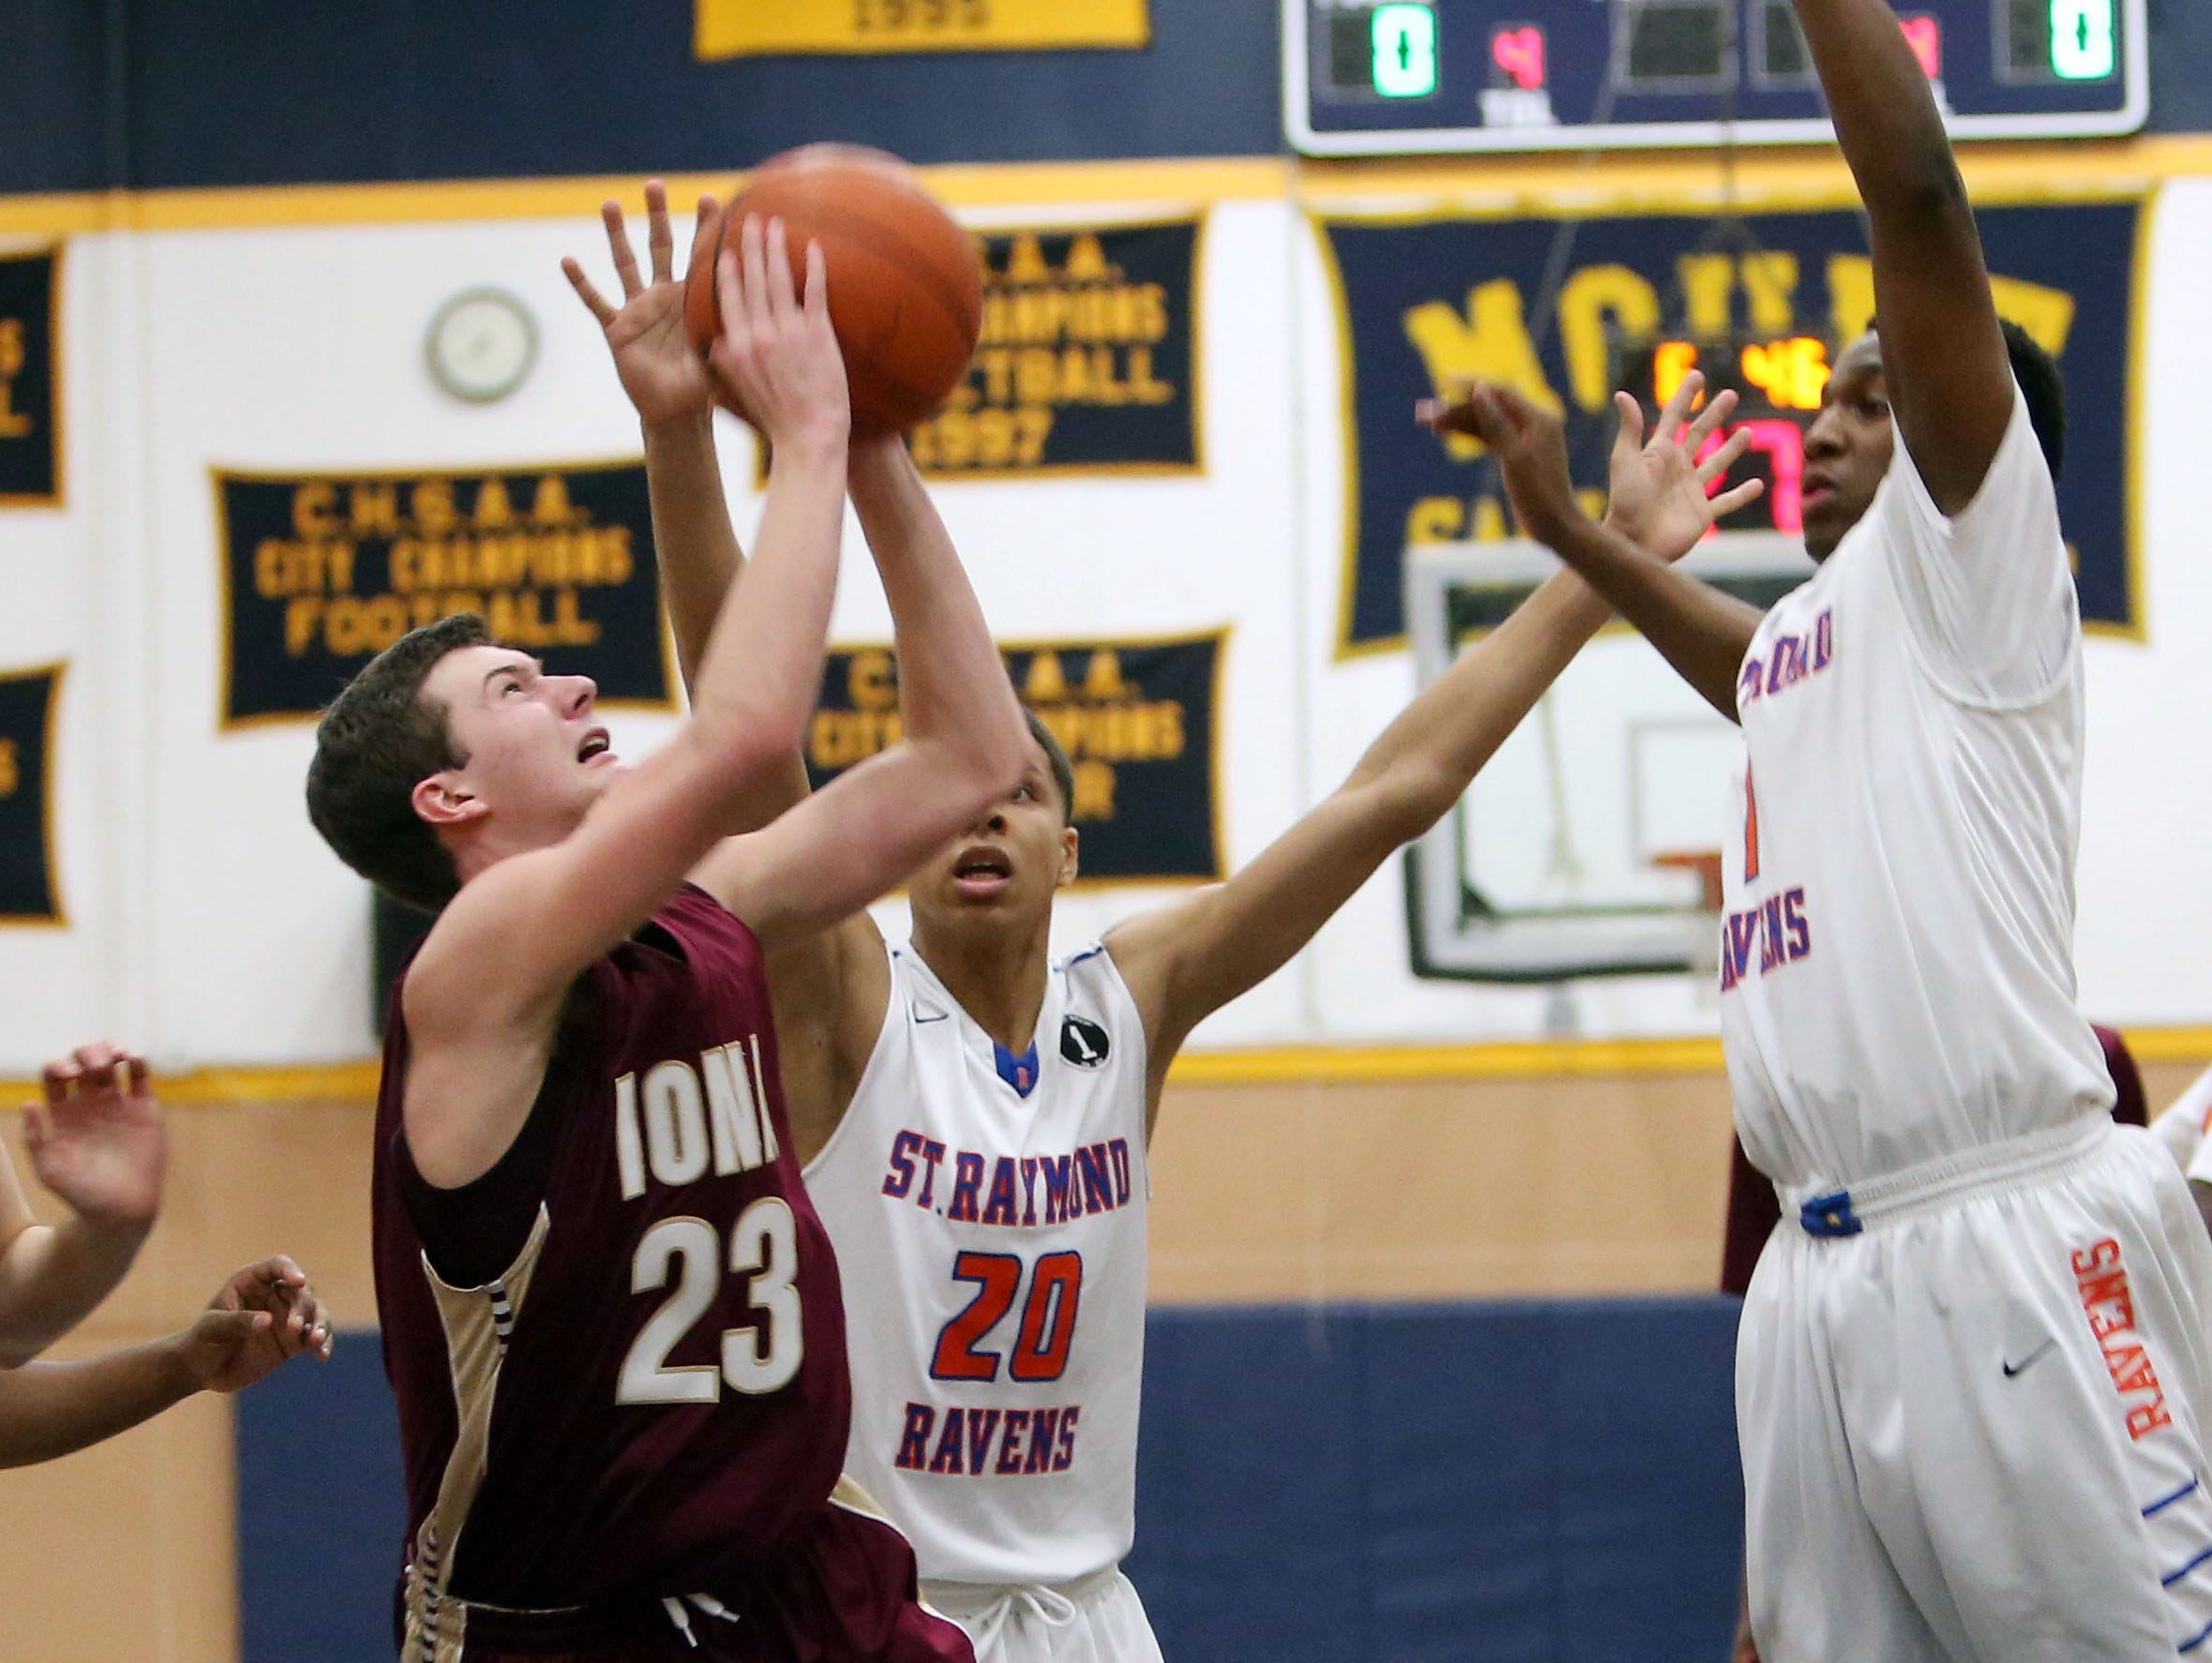 Iona's Patrick Fleming tries to get a shot off while being pressured by Saint Raymond's Joe Lupin (20) and Brain Adams (1) during the CHSAA Archdiocesan tournament semifinal at Mount Saint Michael Academy in the Bronx Feb. 23, 2016. Saint Raymond won the game 55-47.